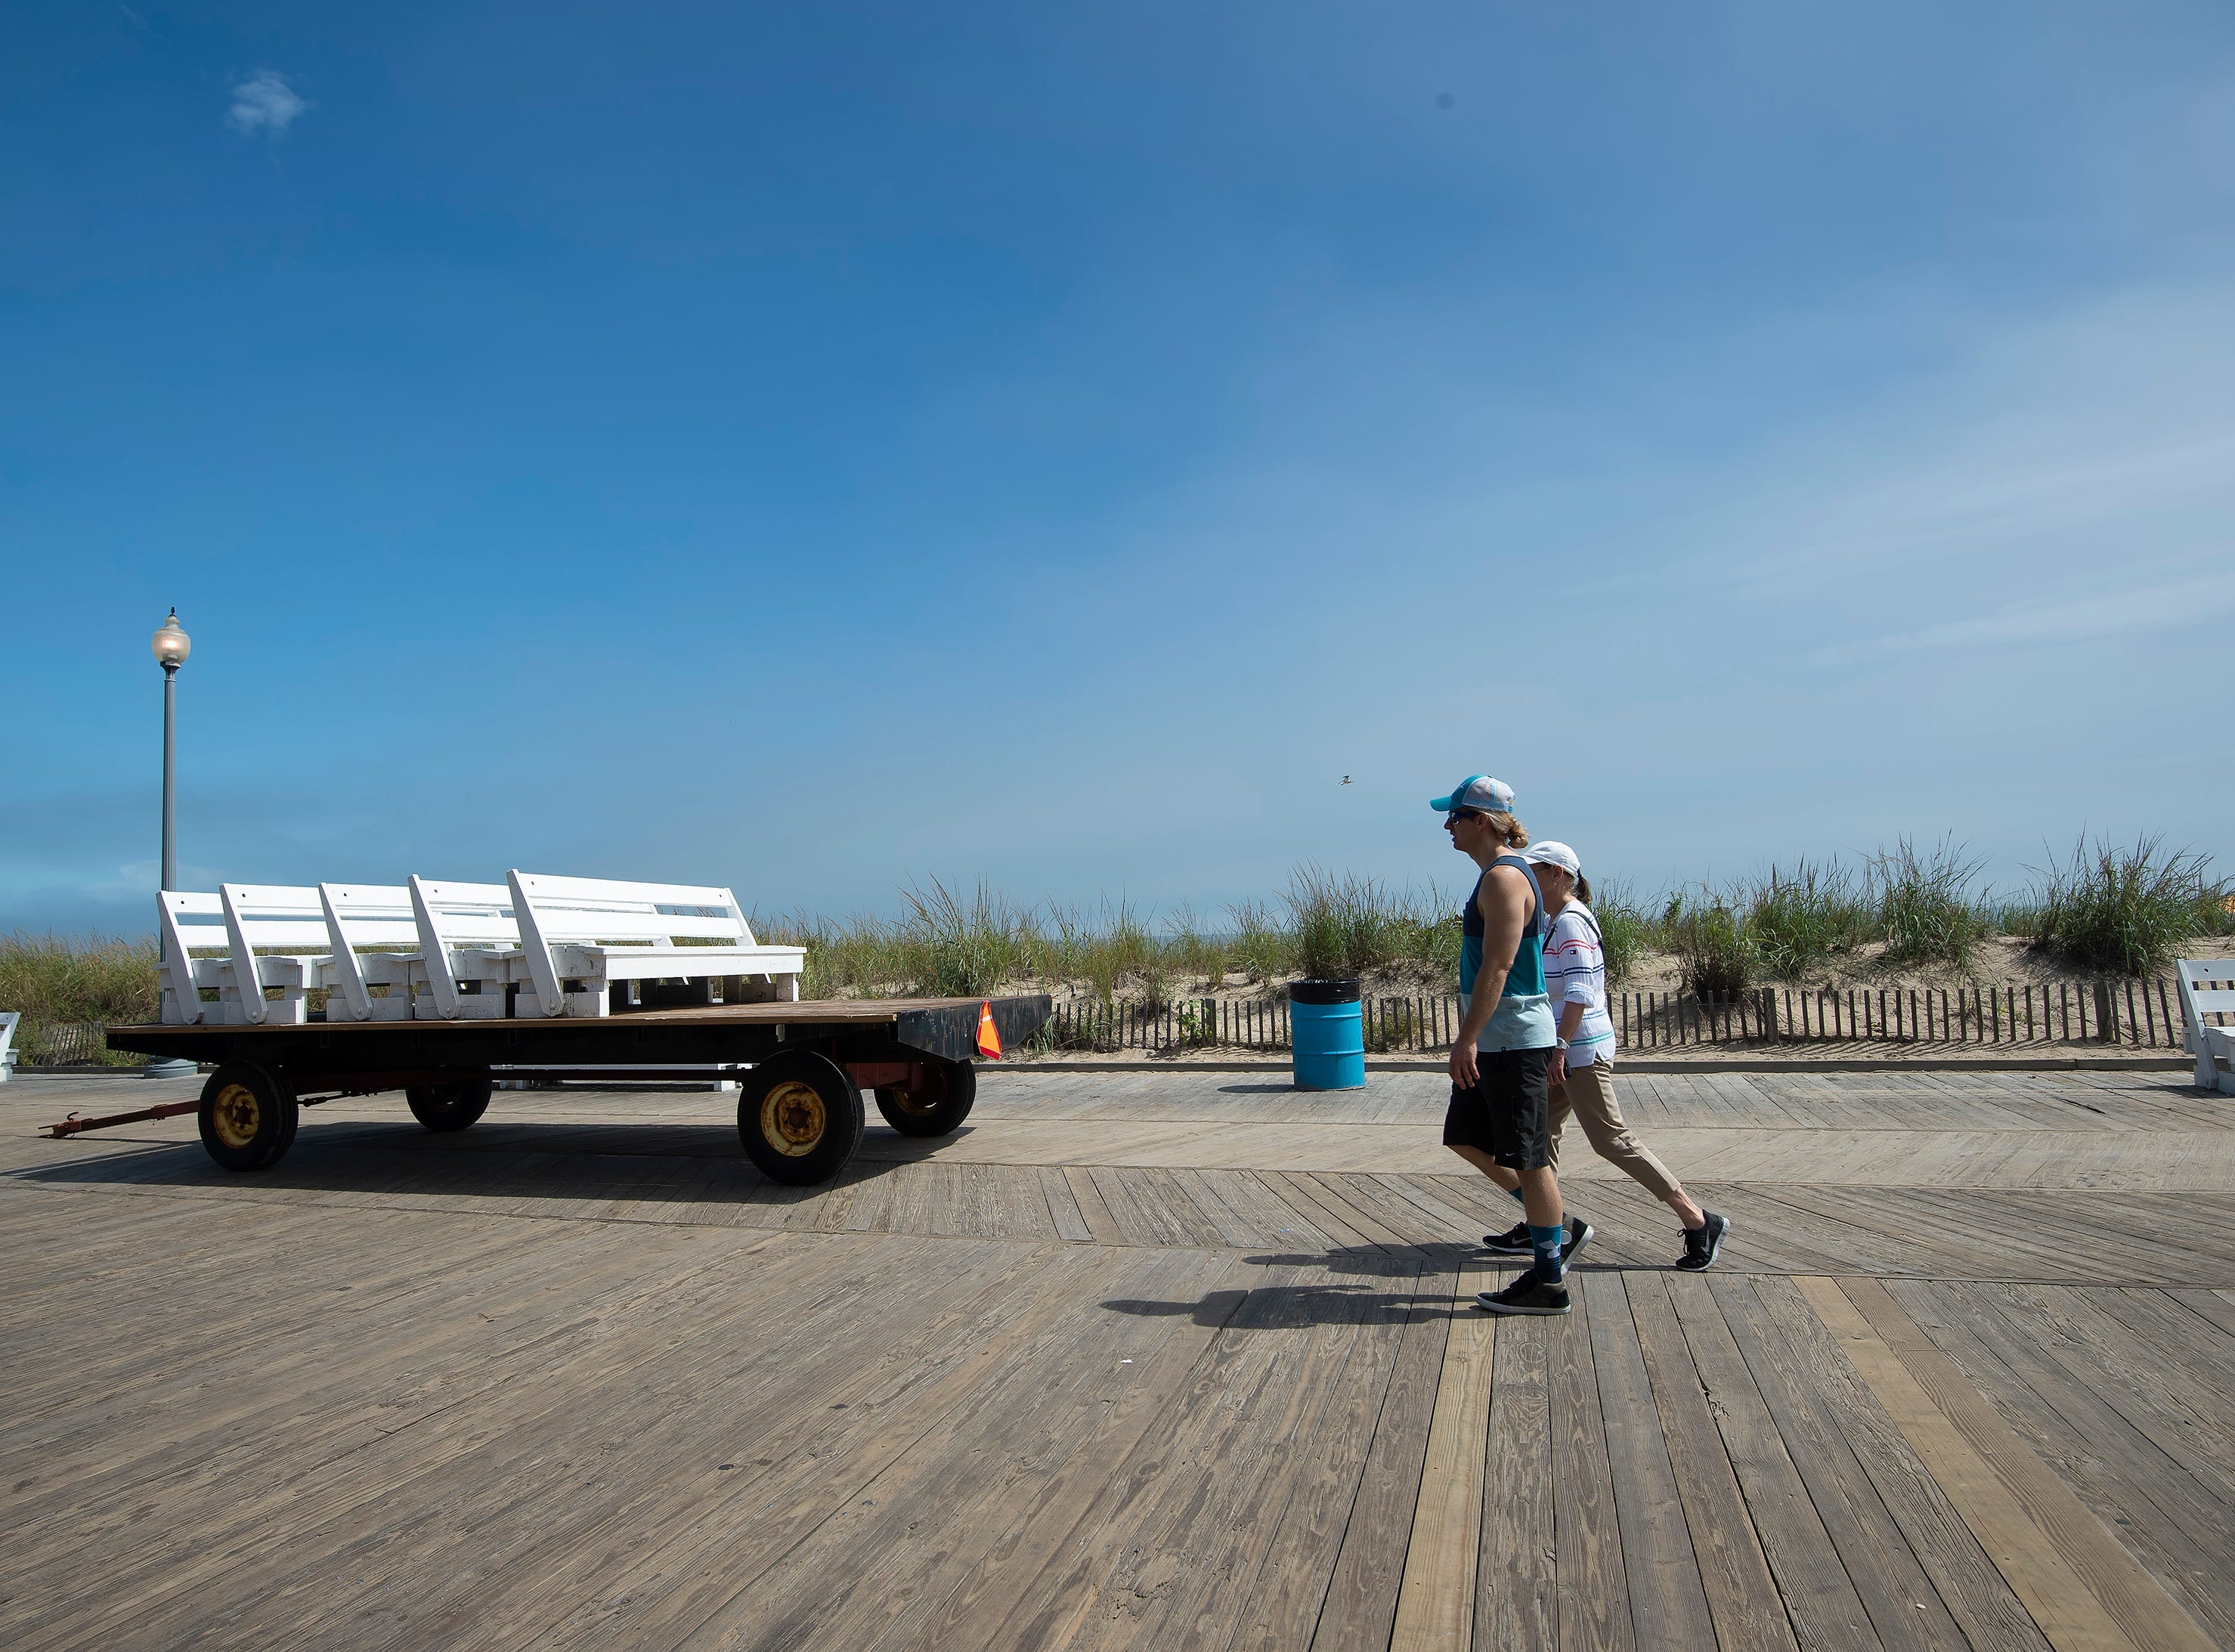 Beachgoers walk next to a trailer of beach benches at Rehoboth Beach.